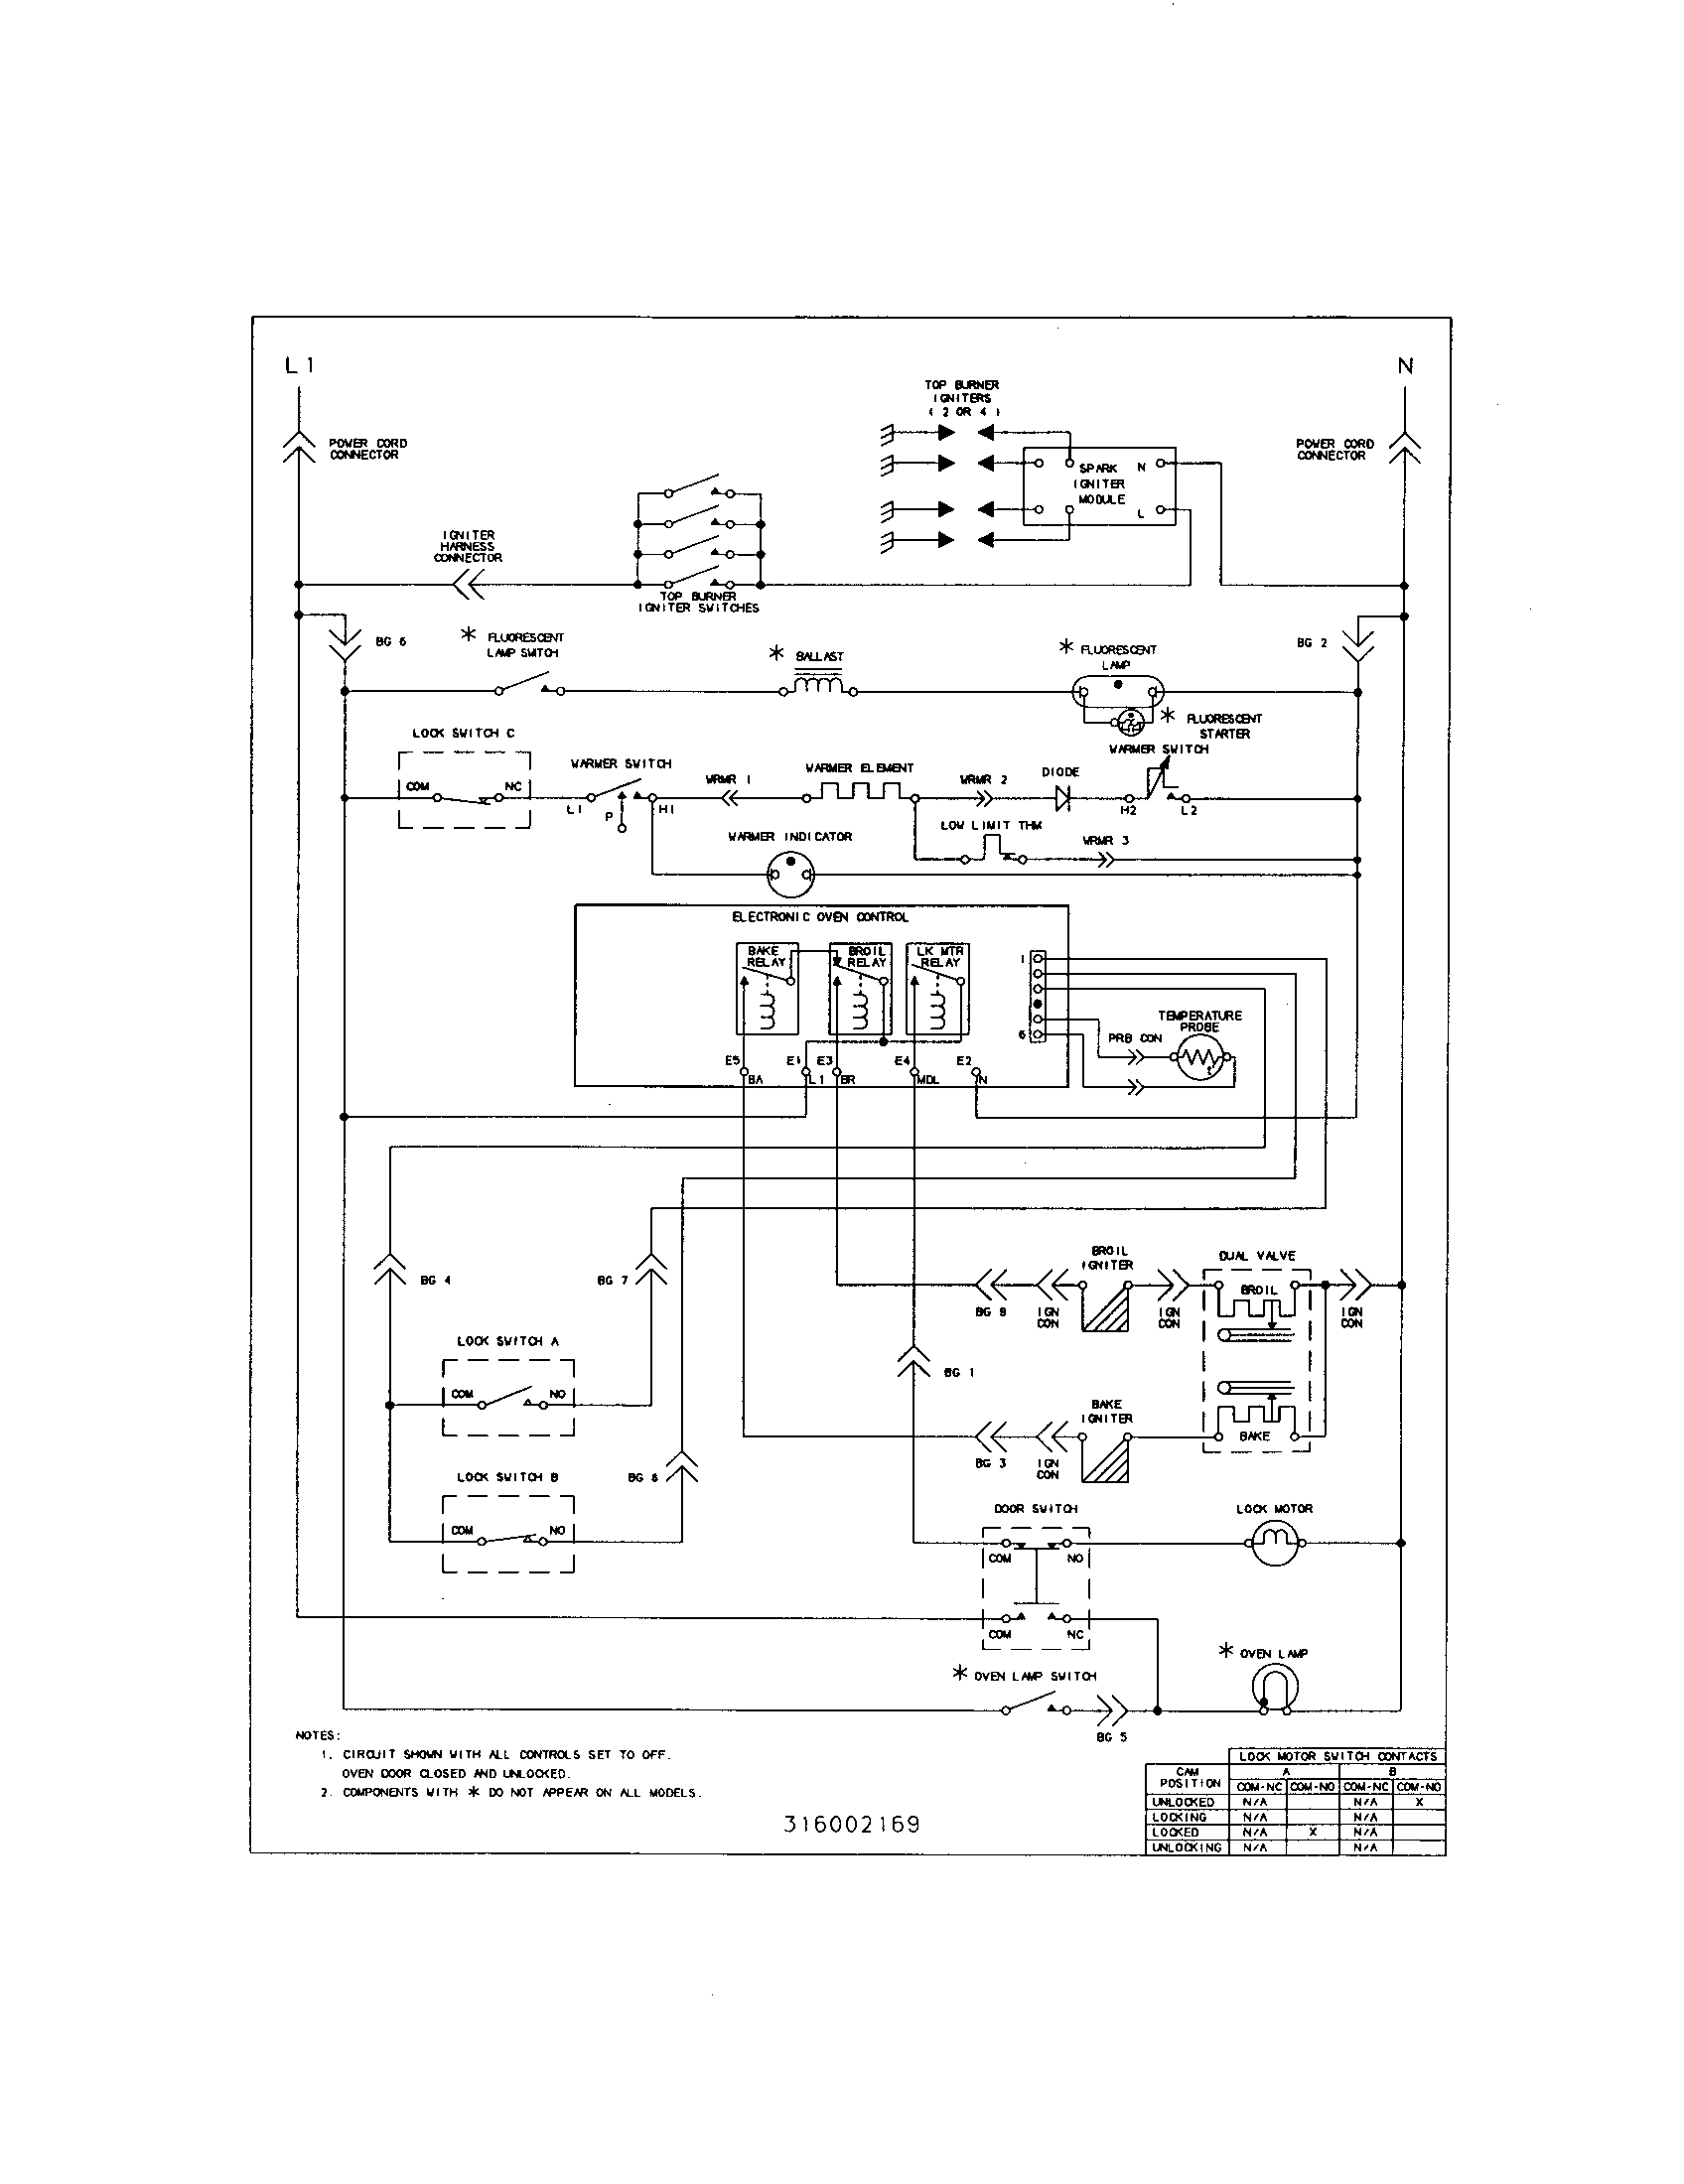 Wiring Diagram For Kenmore Gas Range